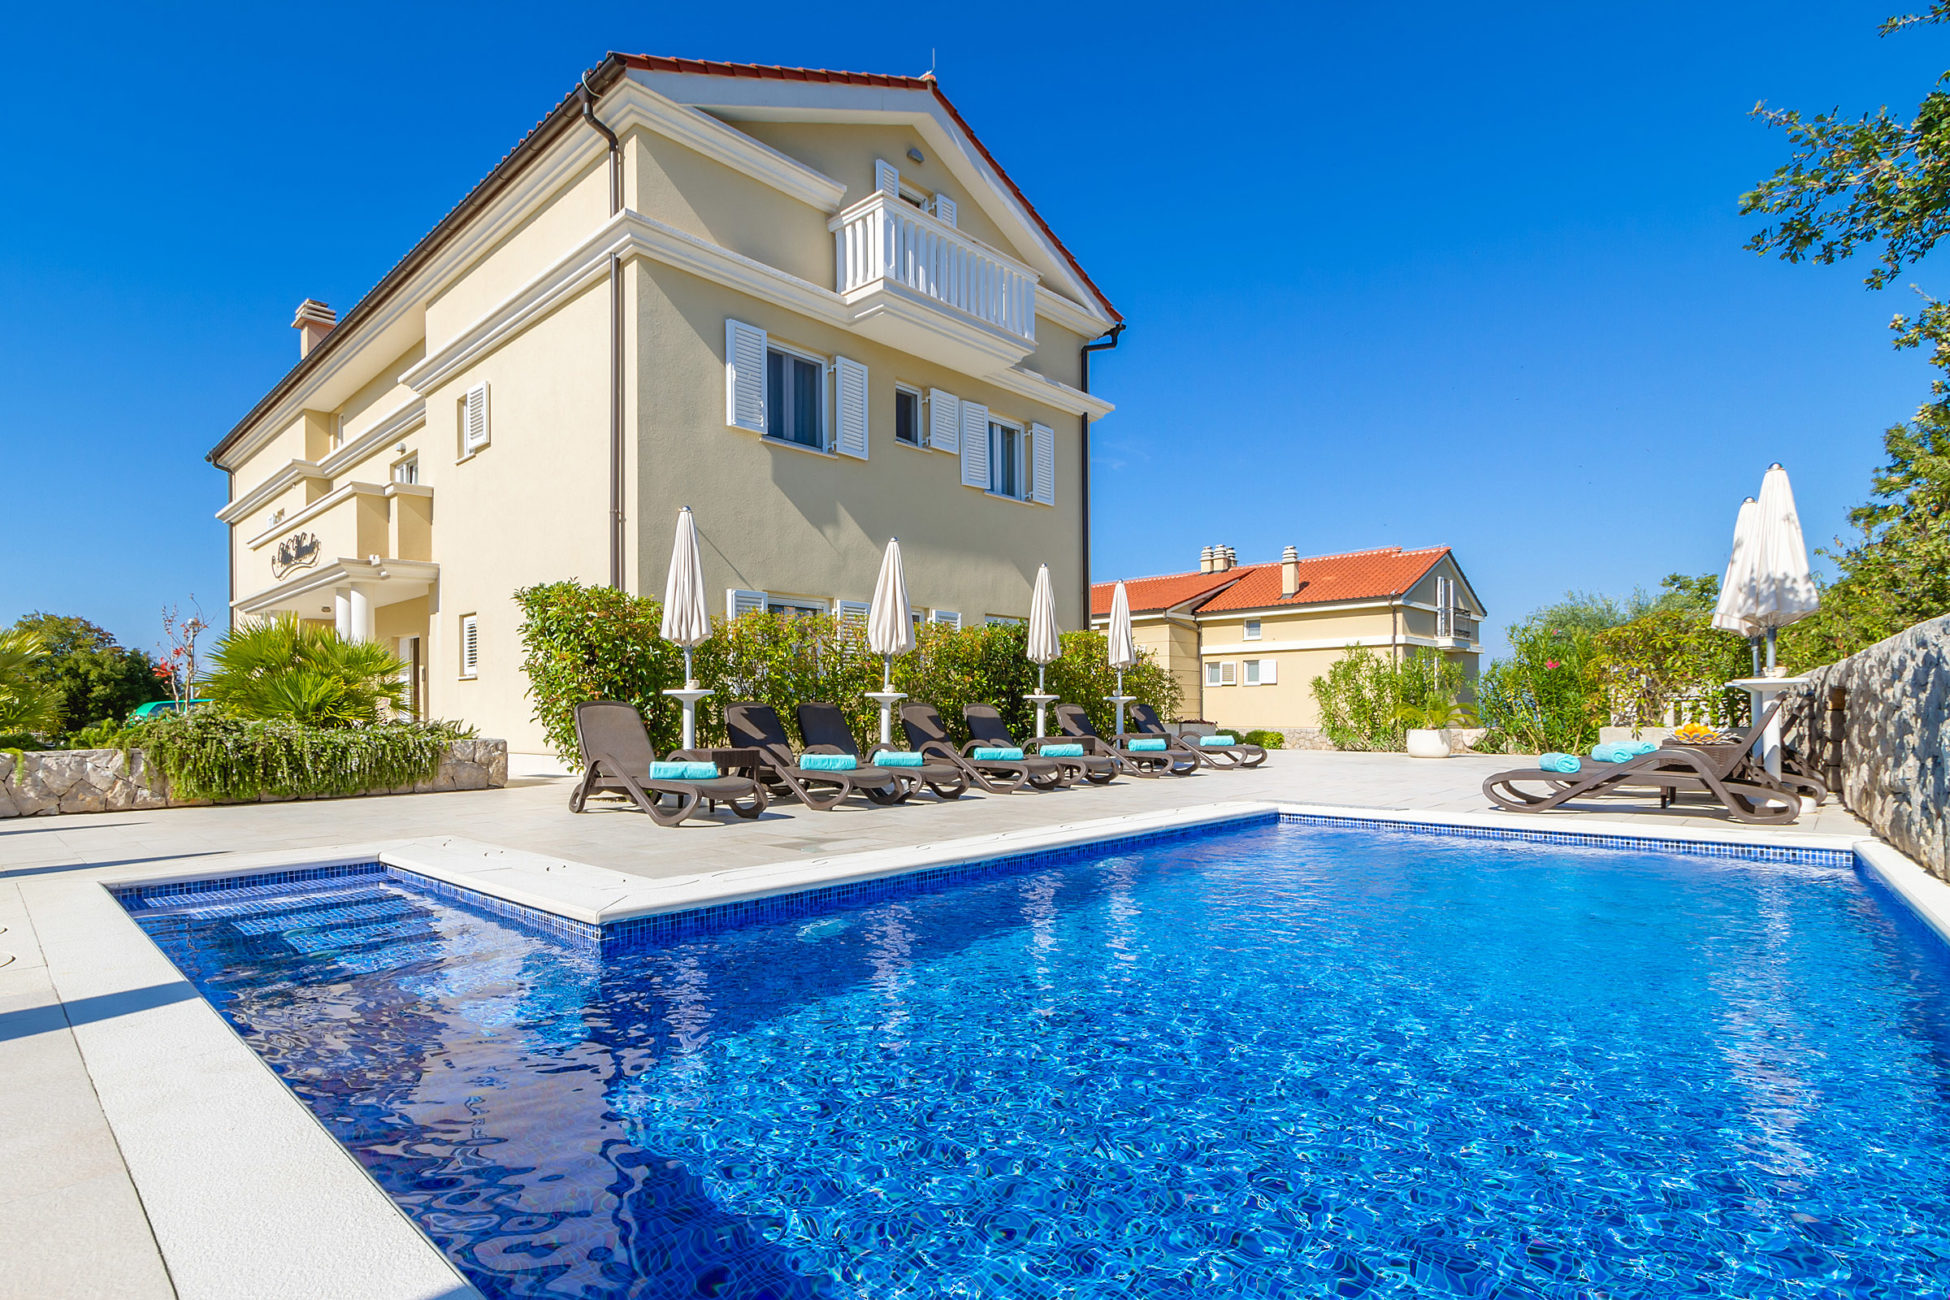 Malin Krk villas and apartments